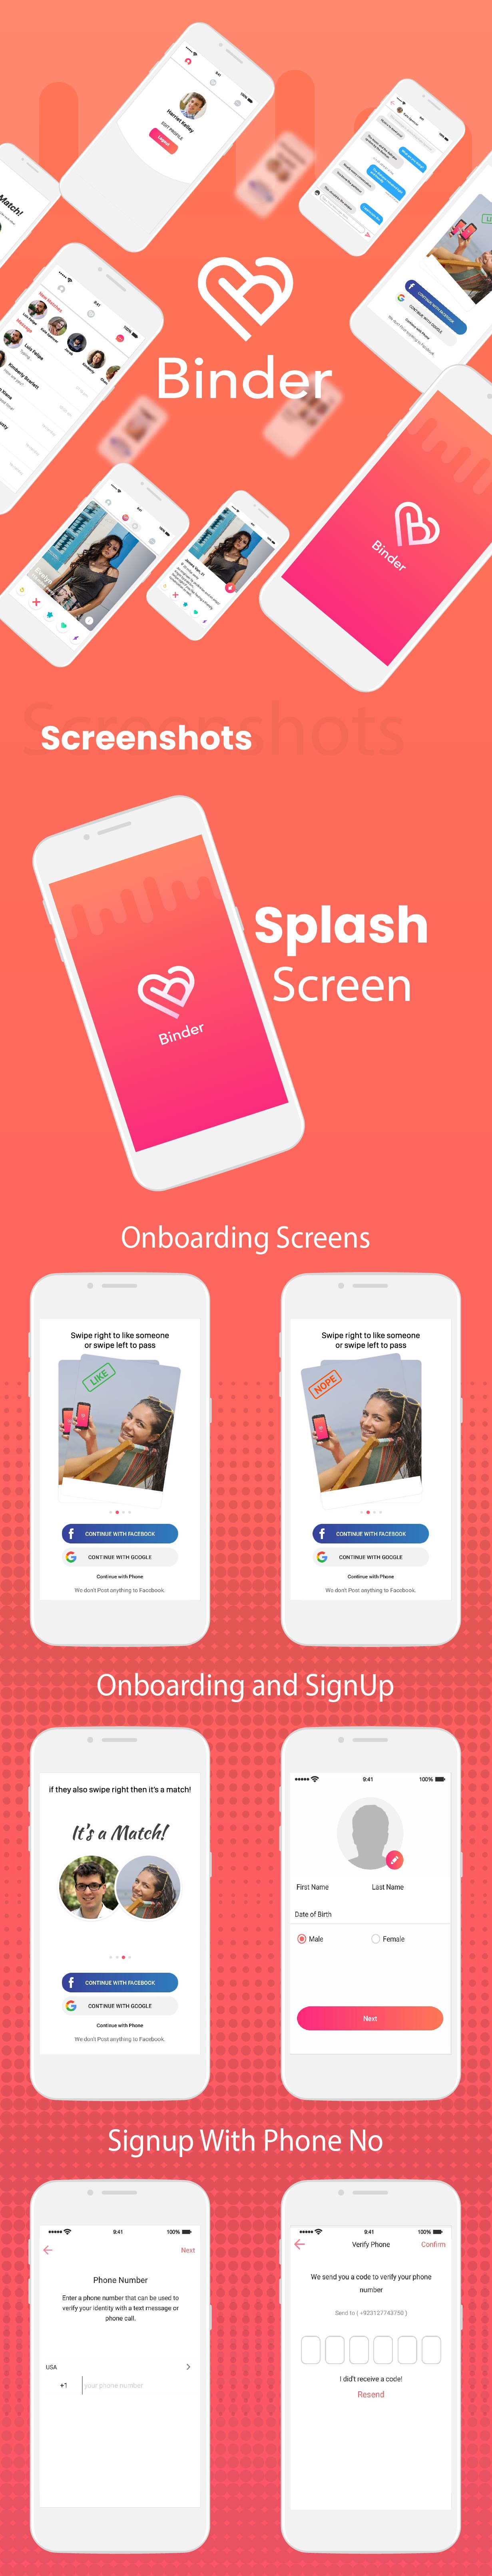 Binder - Dating clone App with admin panel - Android v20.0 - 7